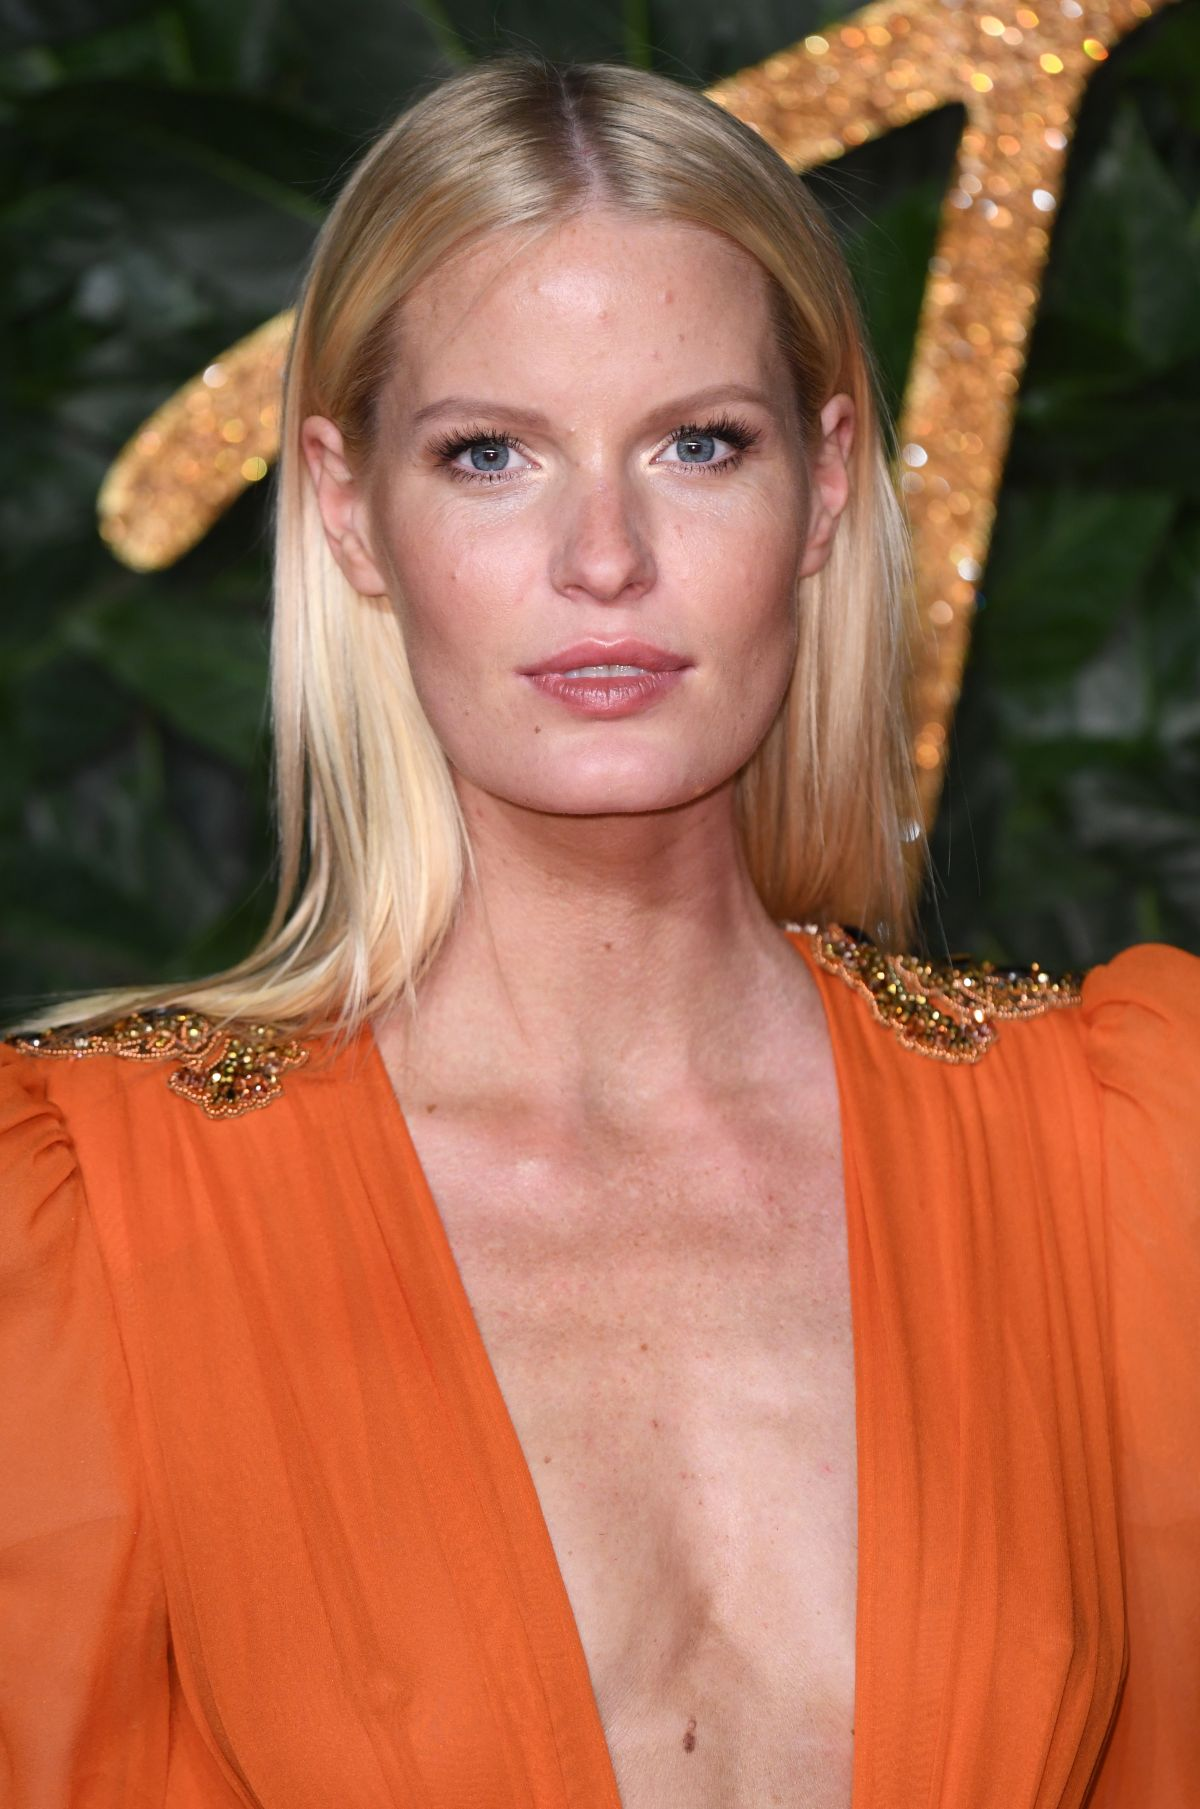 Celebrites Caroline Winberg nudes (97 foto and video), Pussy, Cleavage, Boobs, butt 2020